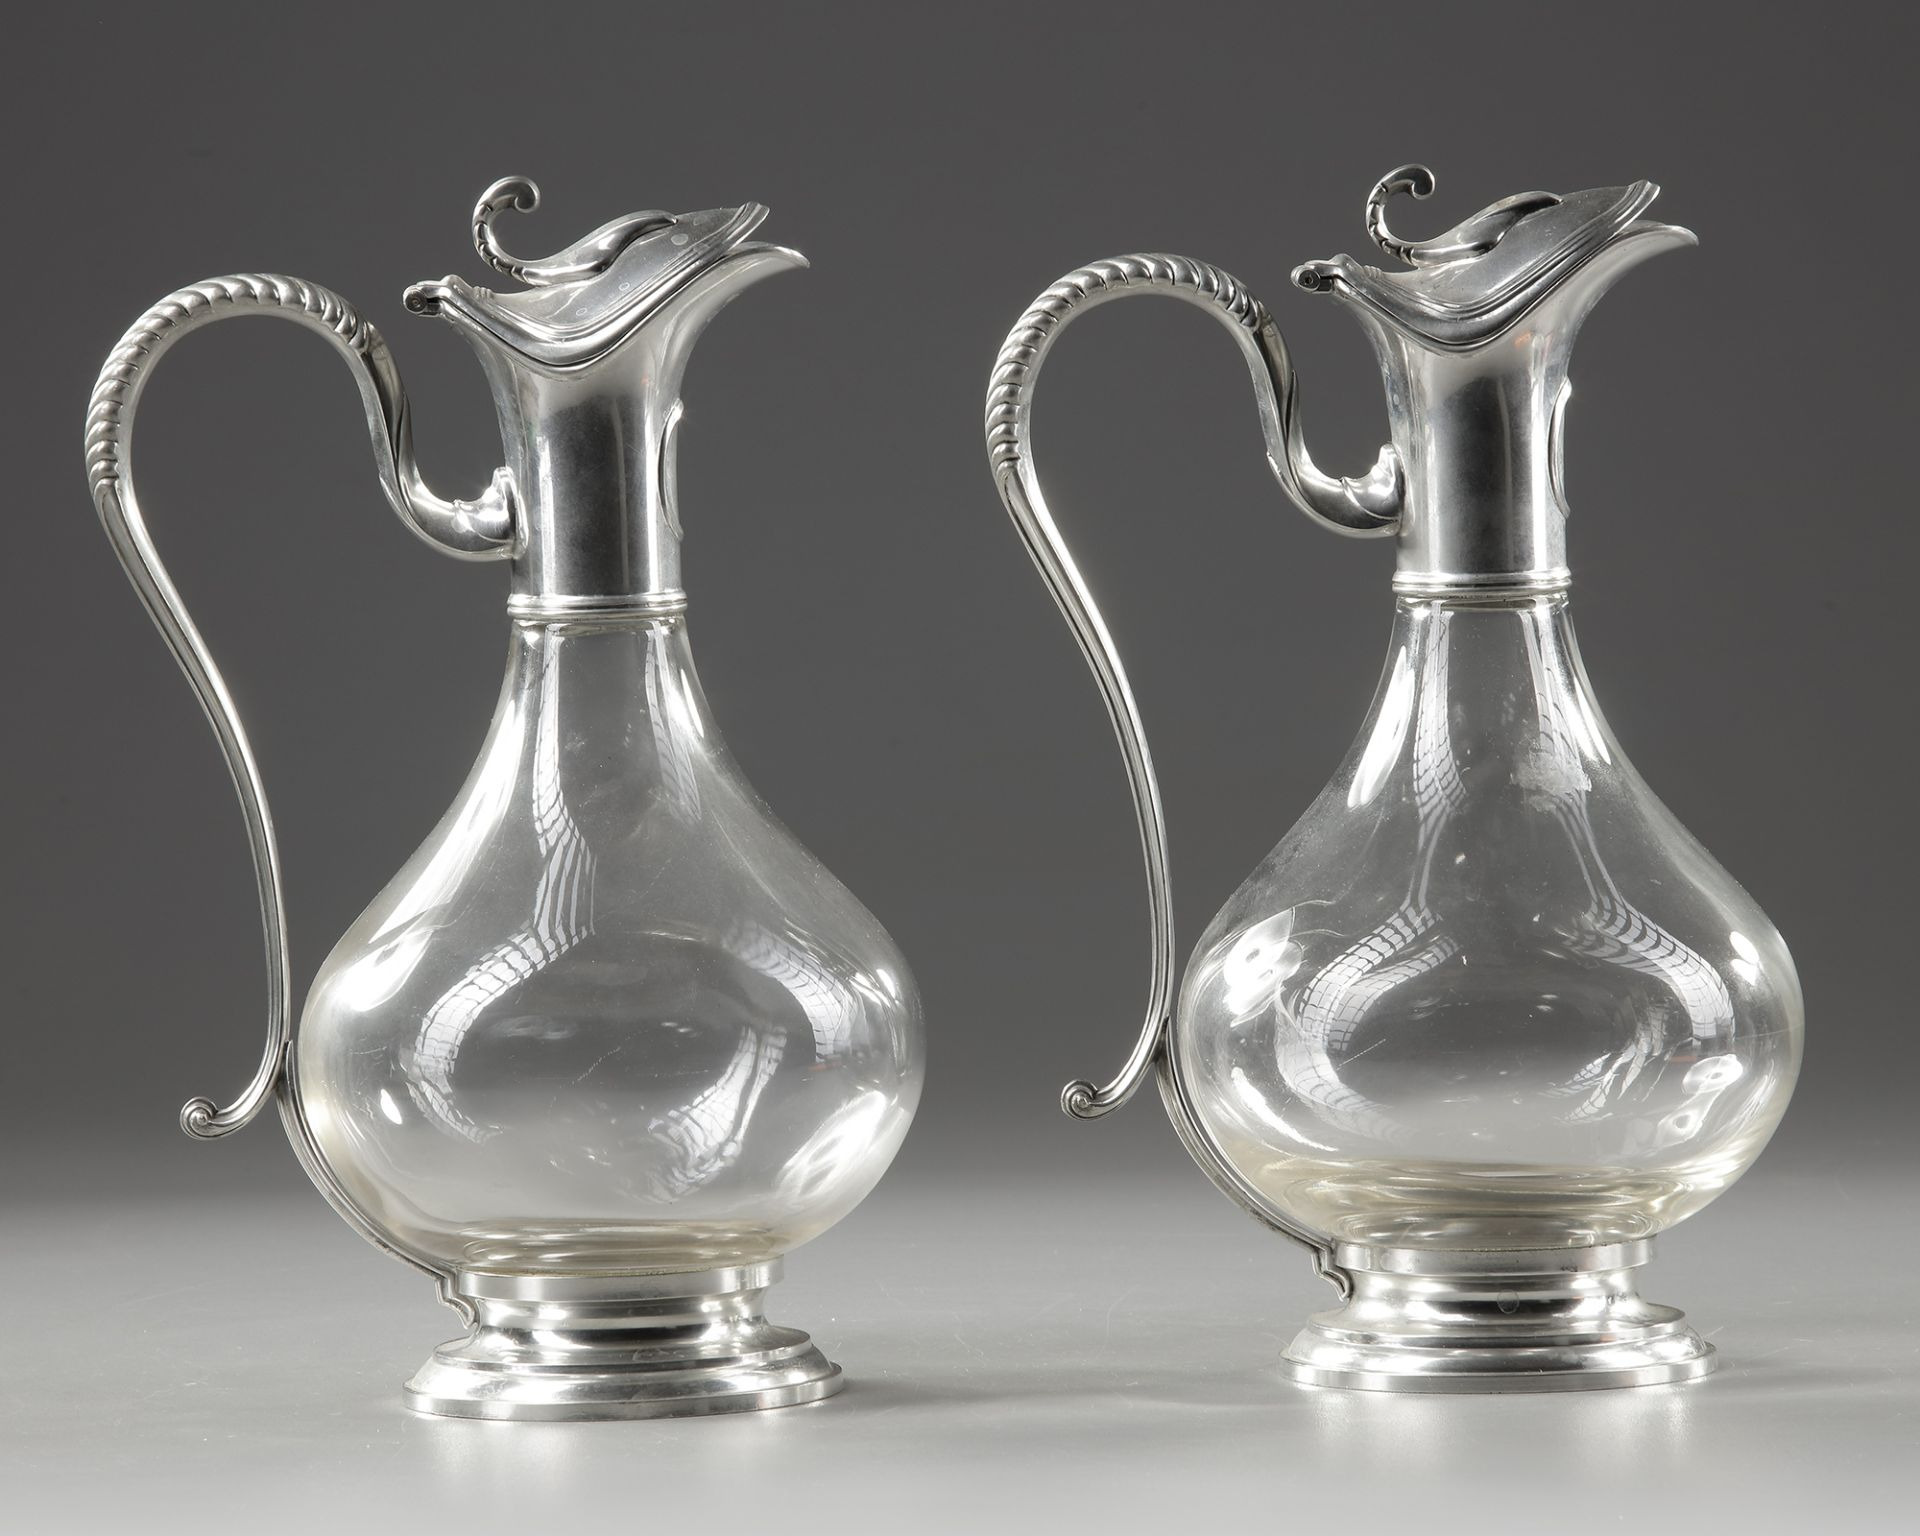 A PAIR OF CRYSTAL AND SILVER METAL EWERS, LATE 19TH CENTURY - Image 2 of 3